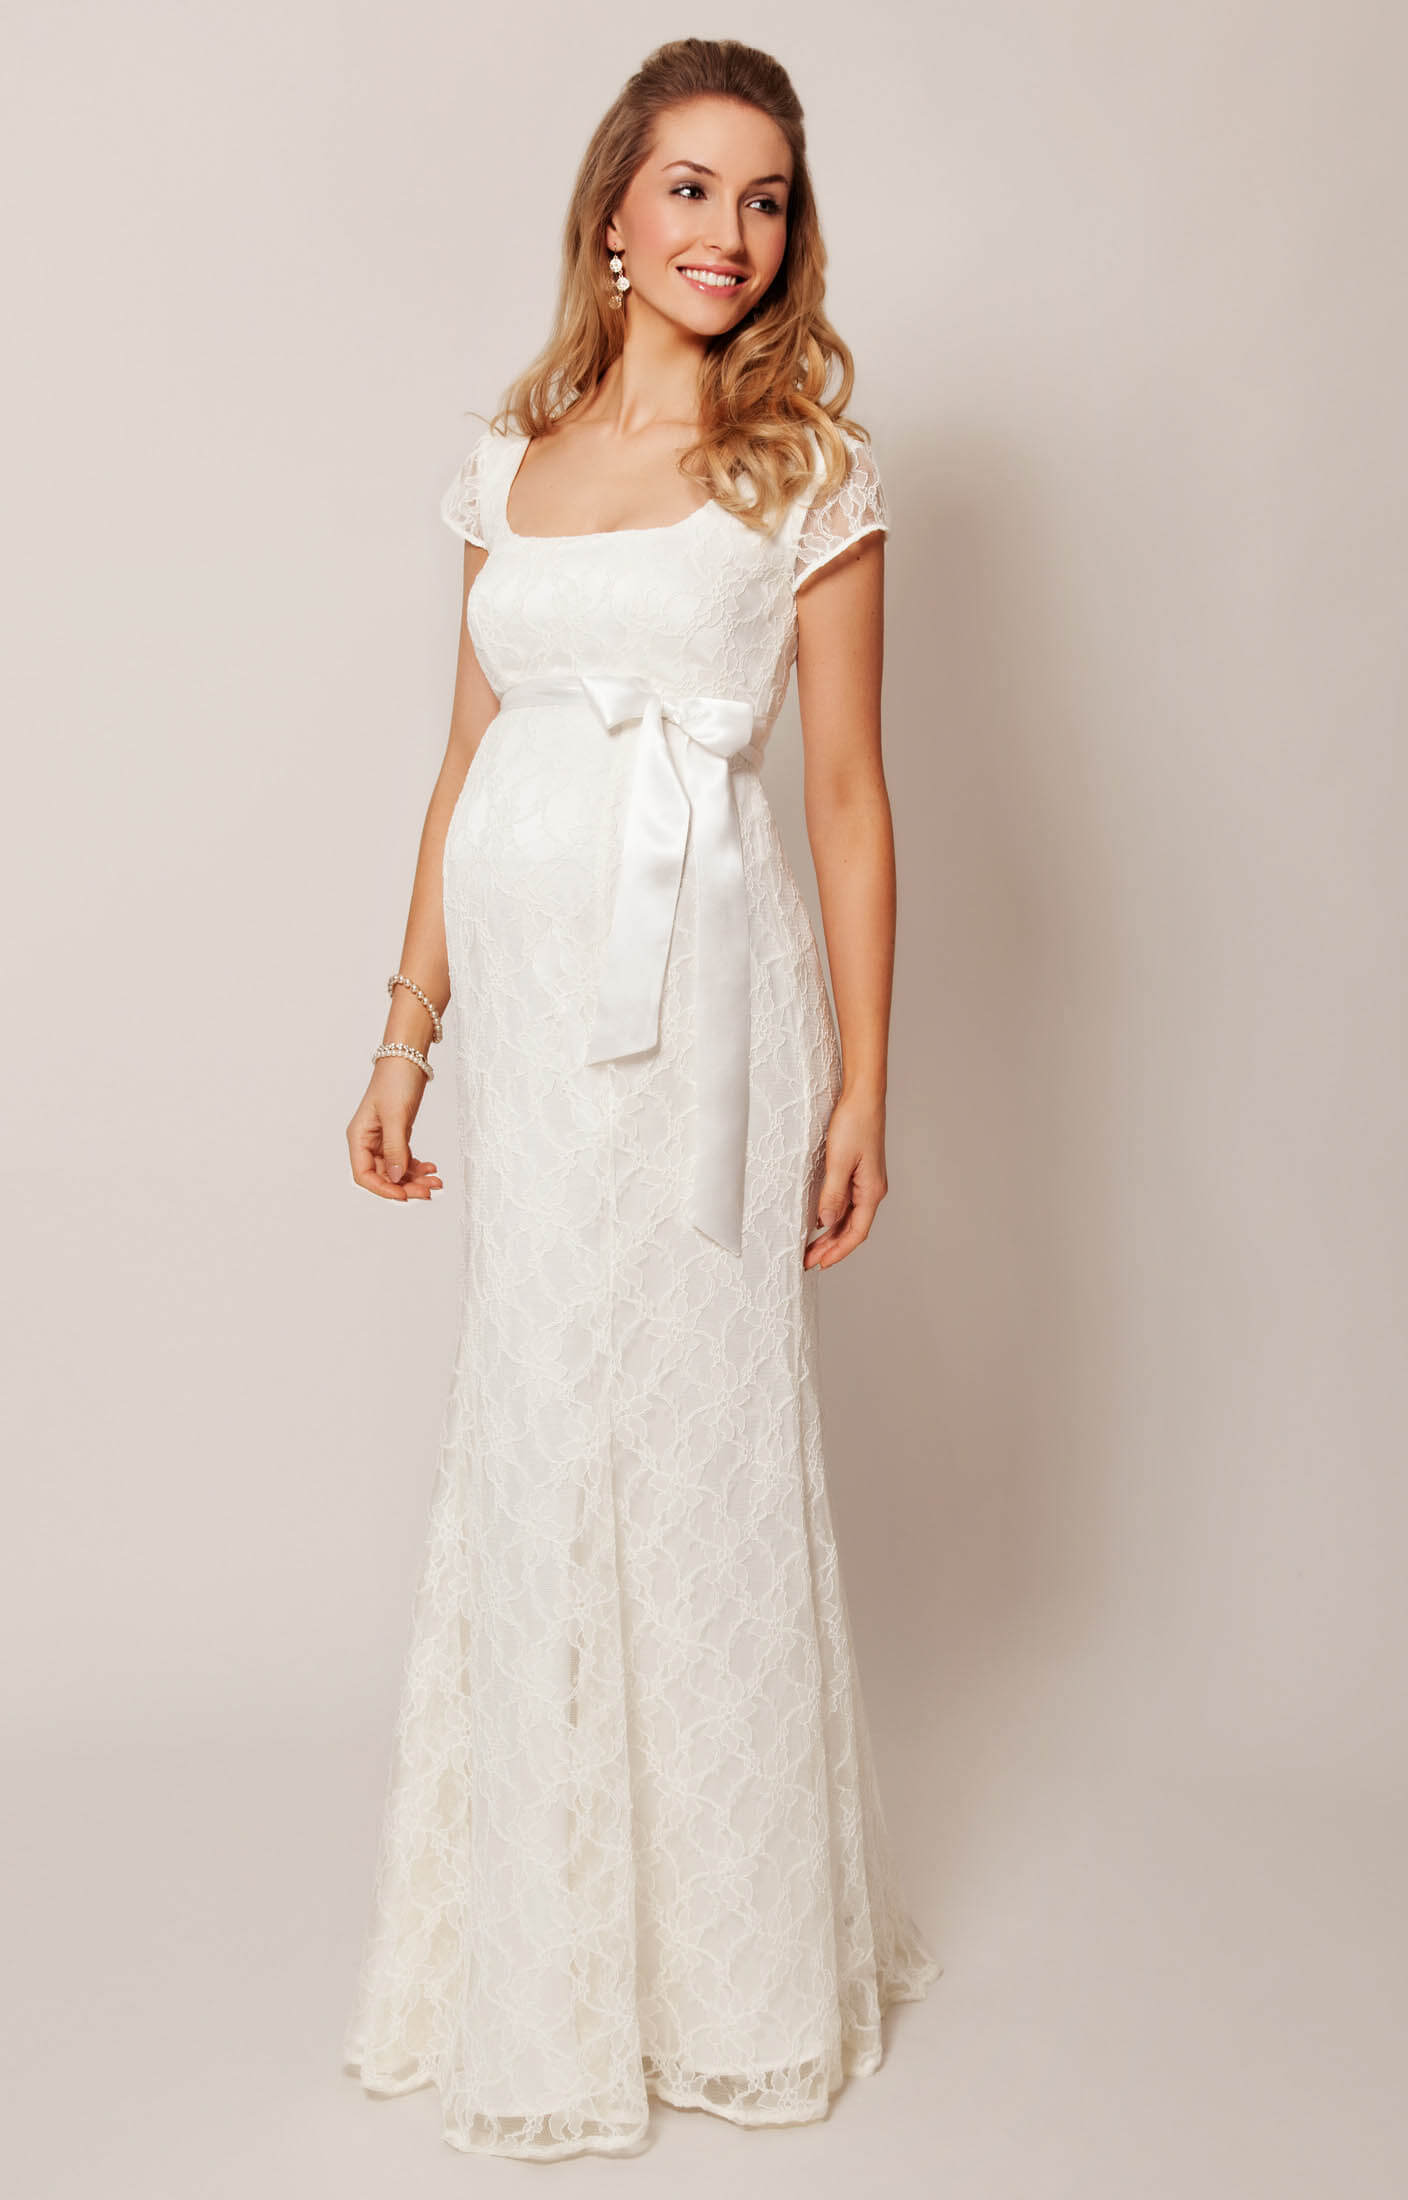 Eva Lace Maternity Wedding Gown (Cream) maternity dress for wedding Eva Lace Maternity Wedding Gown Cream by Tiffany Rose